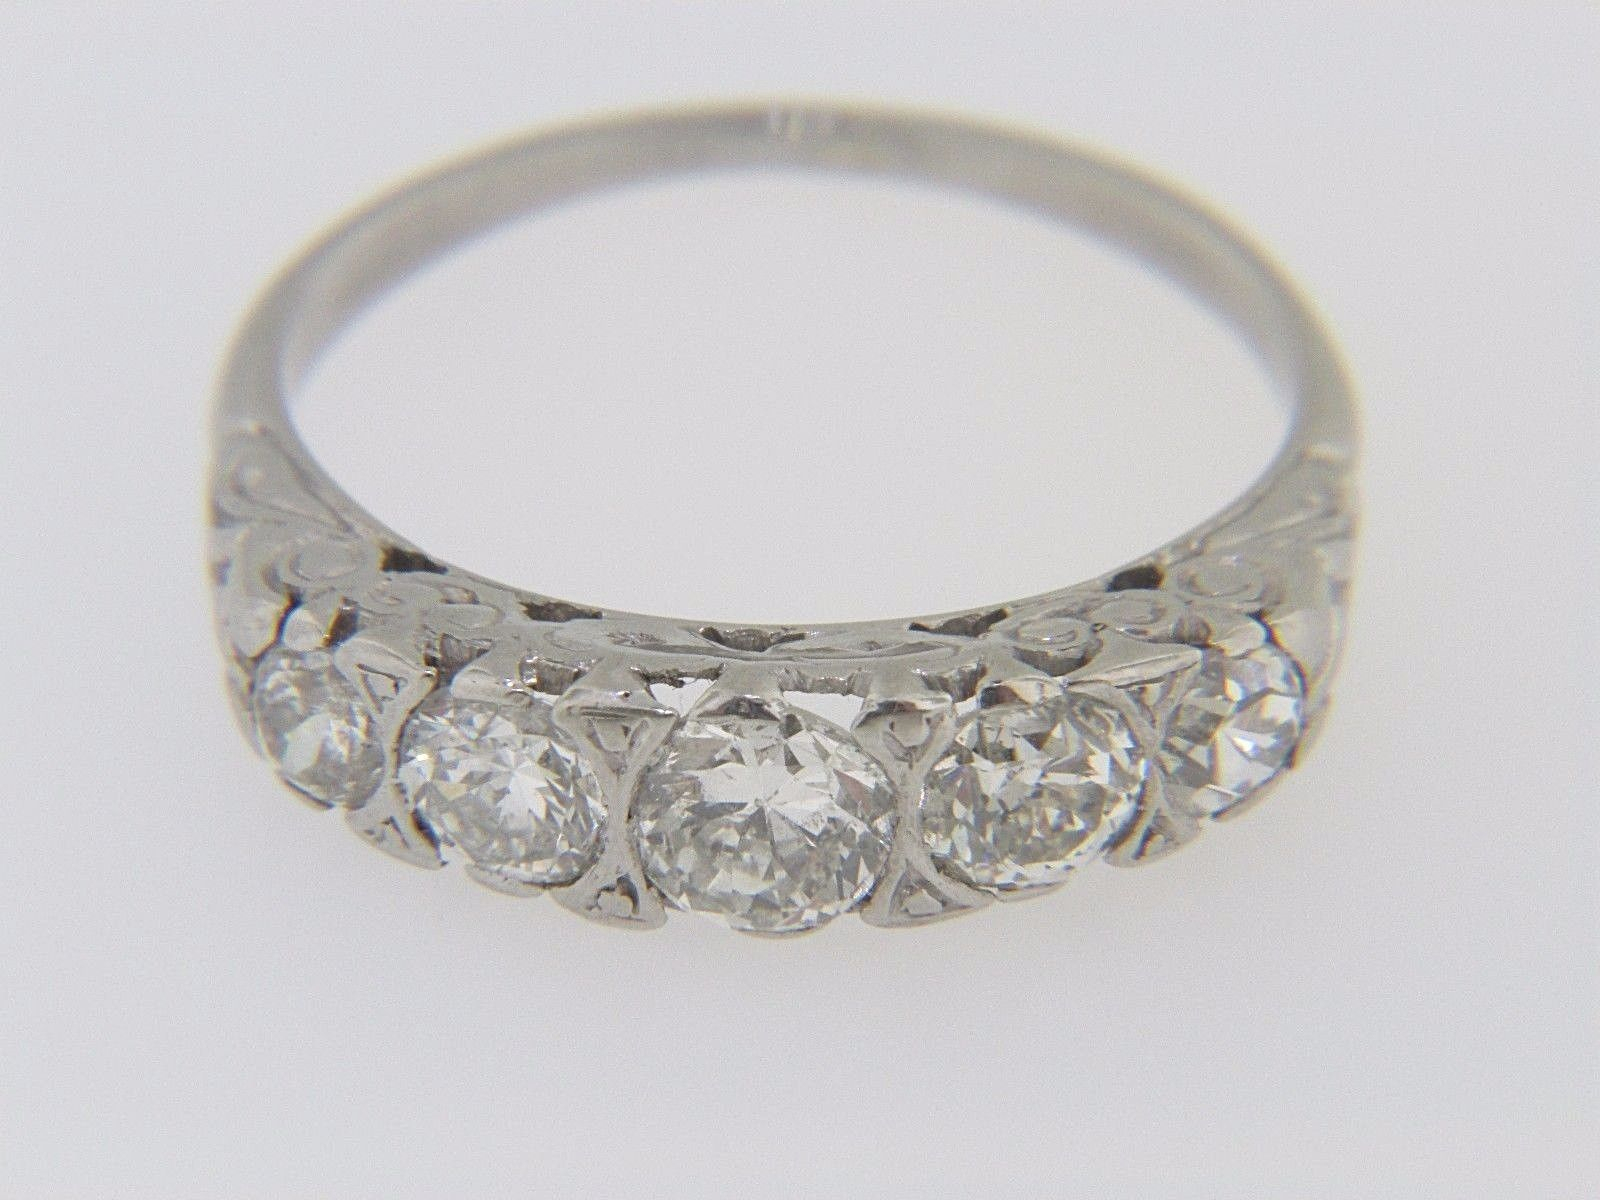 Vintage Diamond Rings | Thomas Jewelers With Best And Newest Vintage Circle Rings (View 16 of 25)